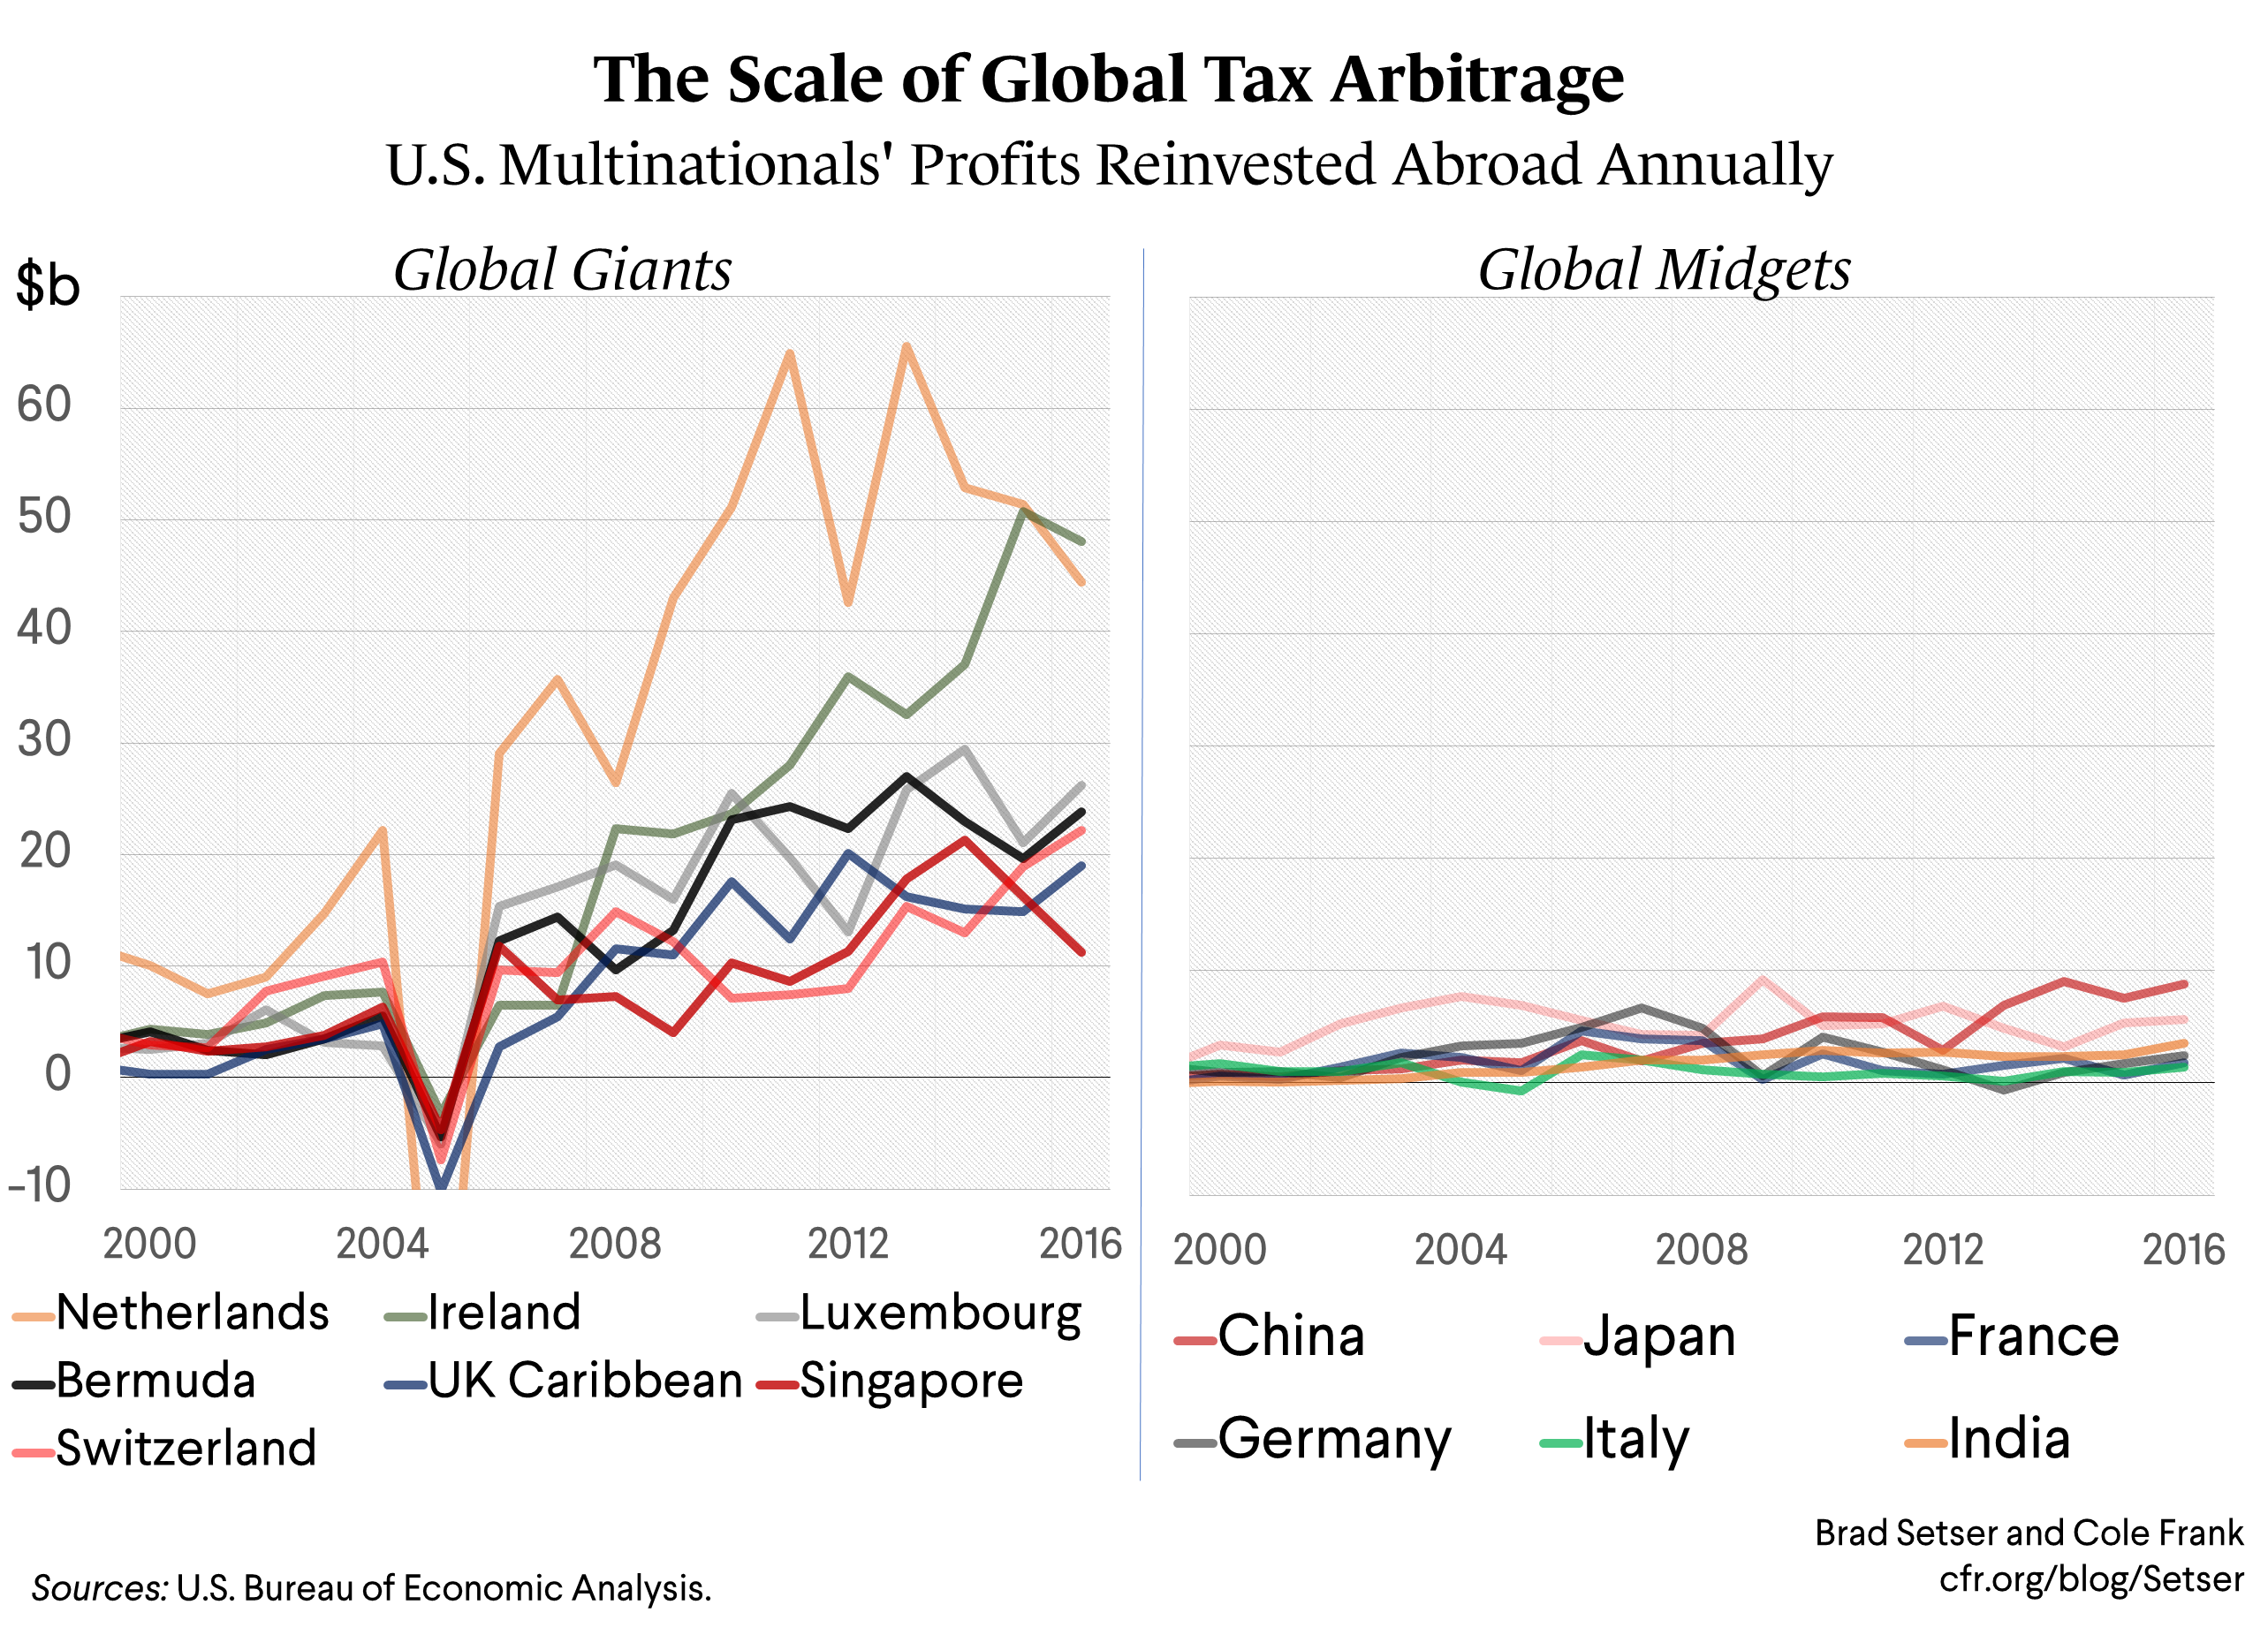 The Impact of Tax Arbitrage on the U.S. Balance of Payments